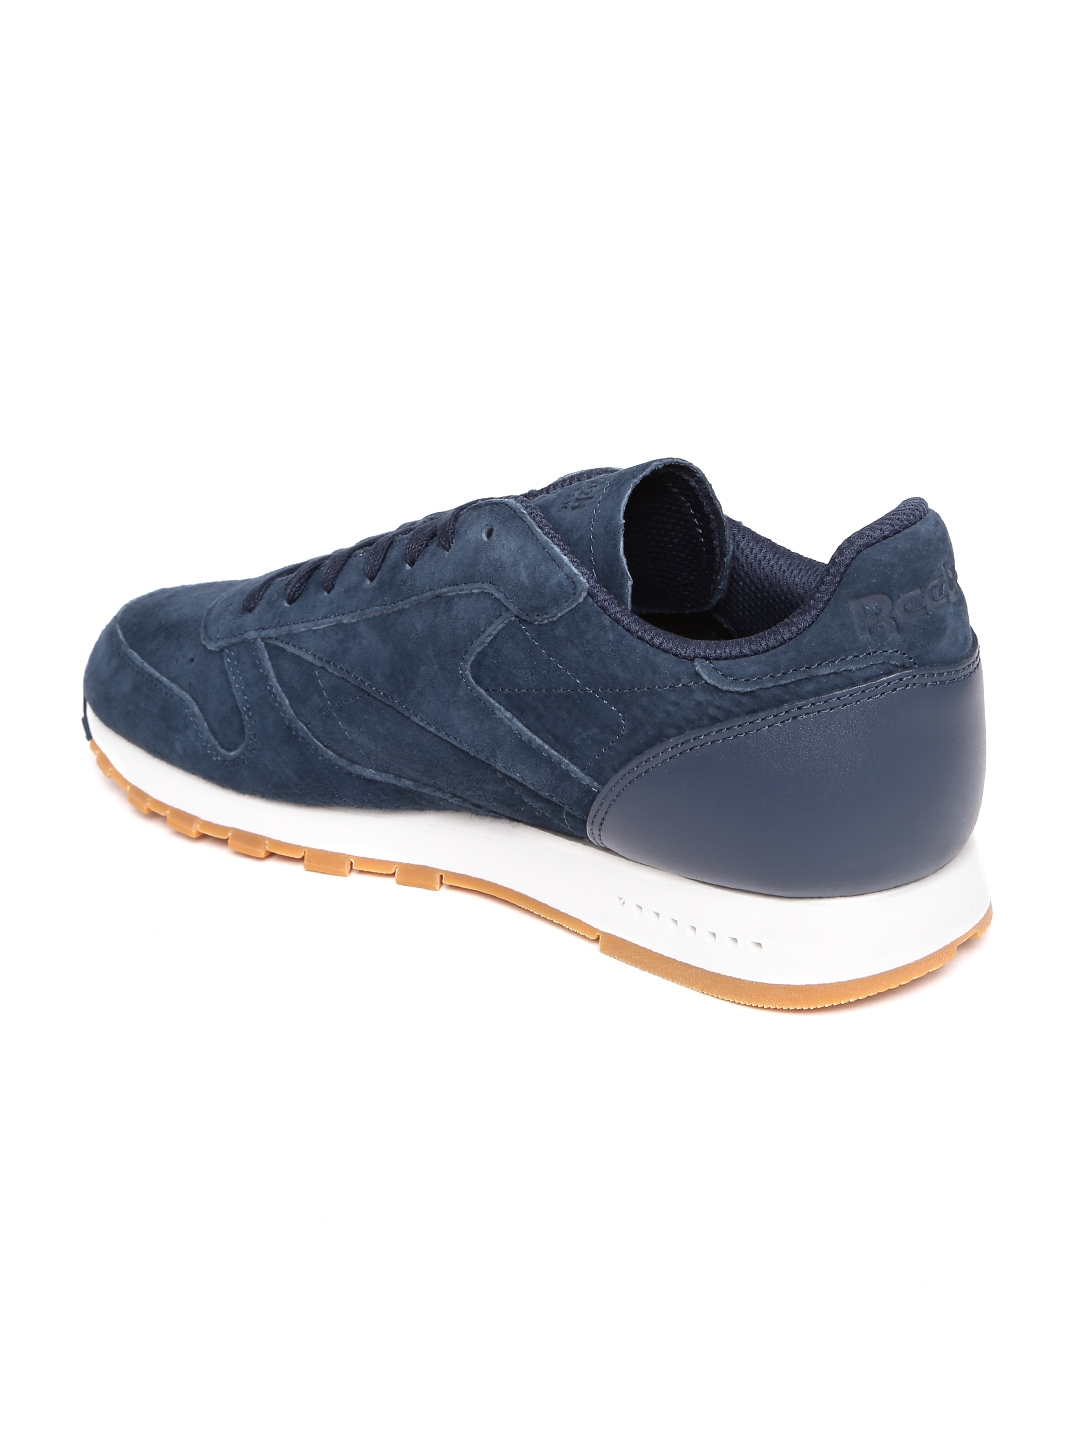 62b77cfe107 Buy Reebok Classic Men Navy CL Leather SG Sneakers - Casual Shoes ...